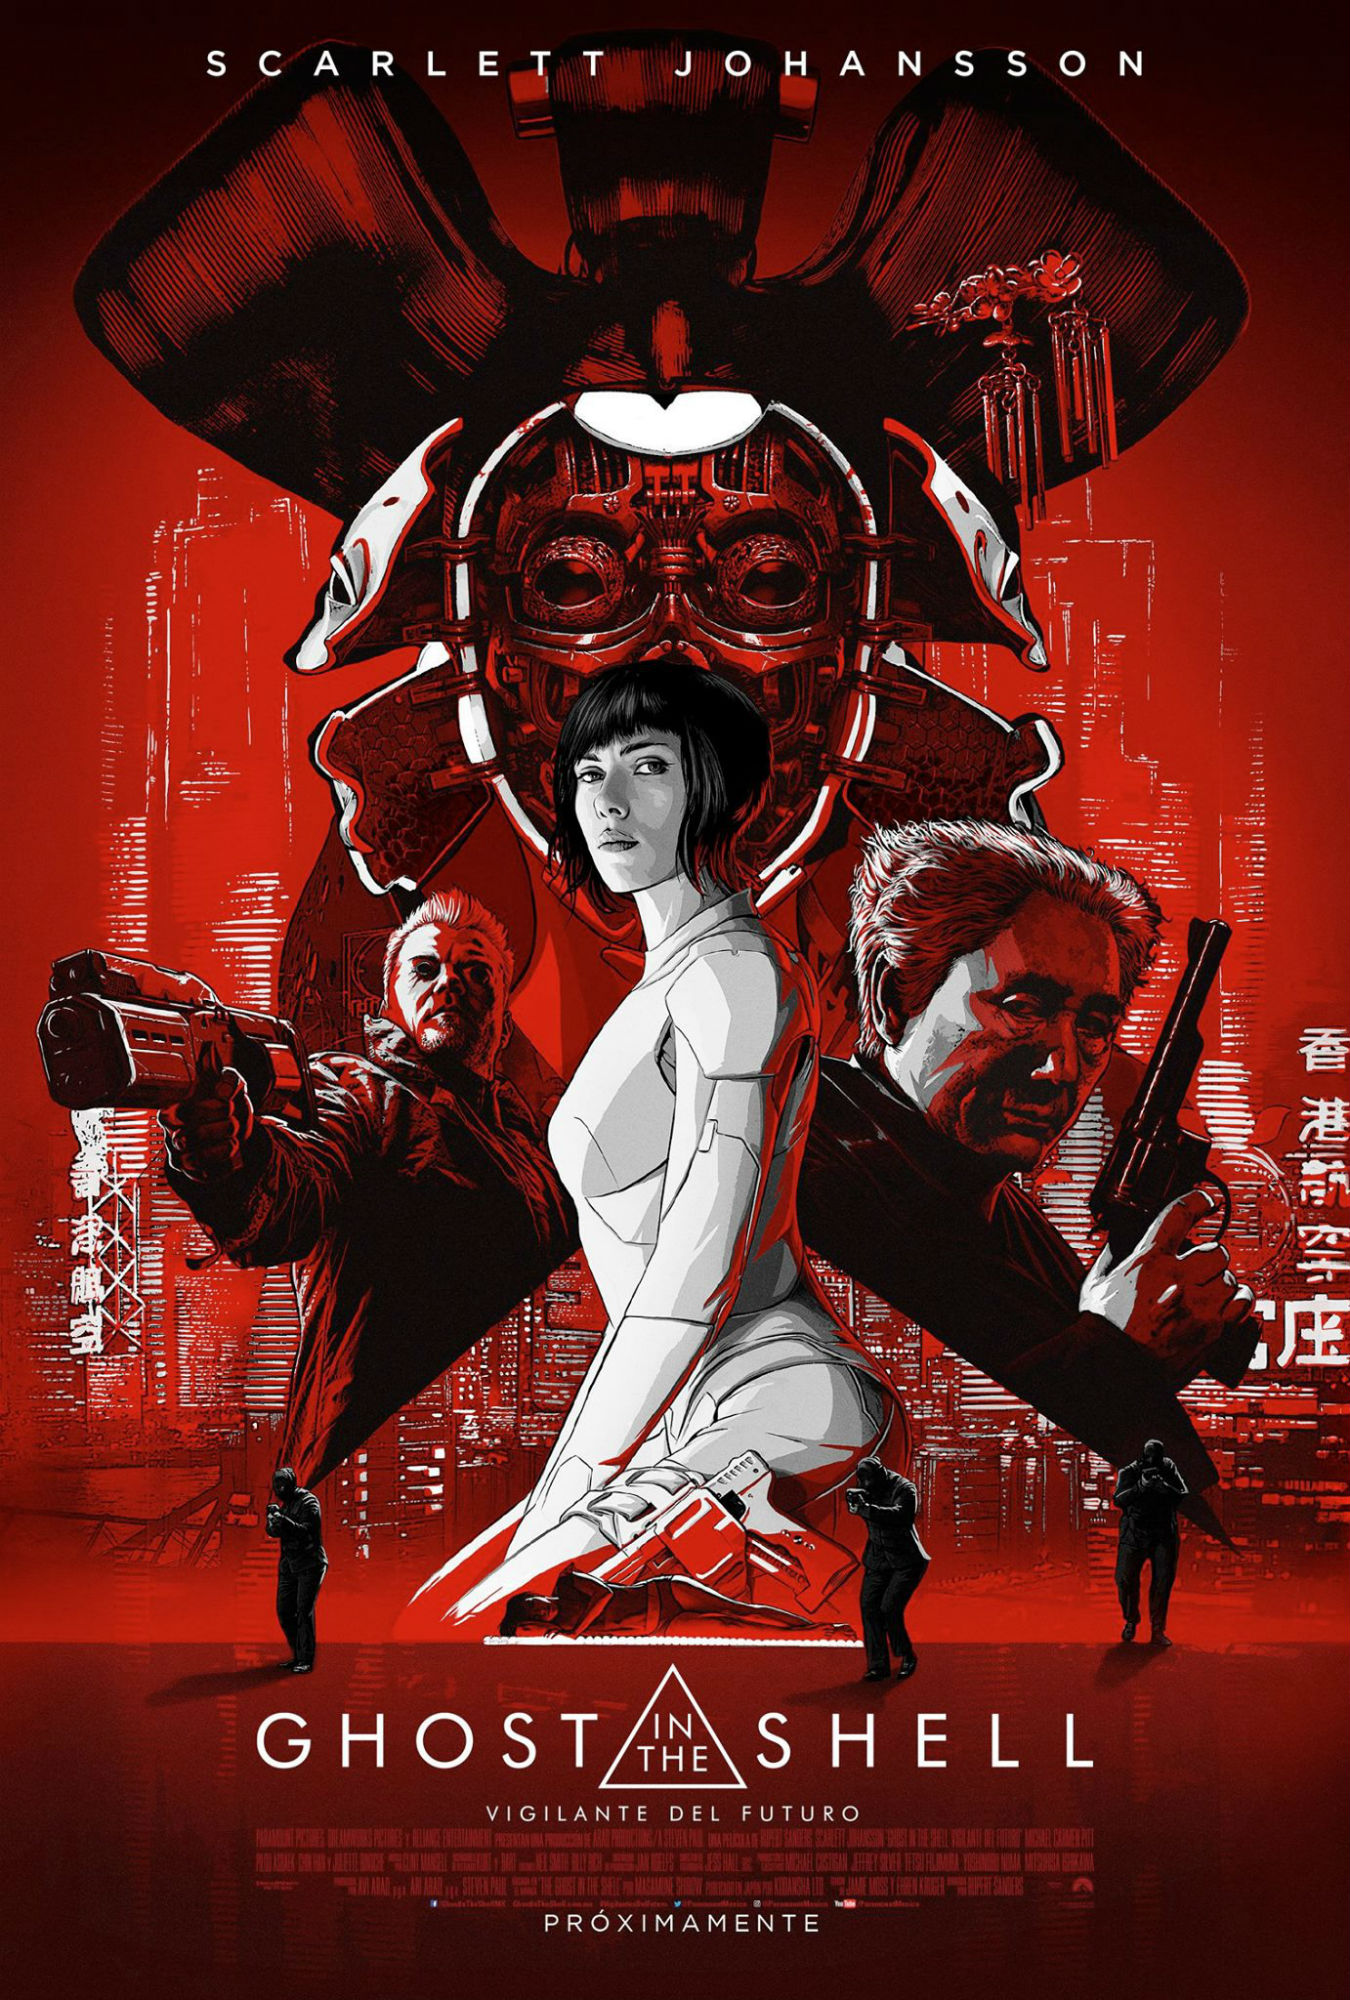 ghost_in_the_shell_poster-new.jpg